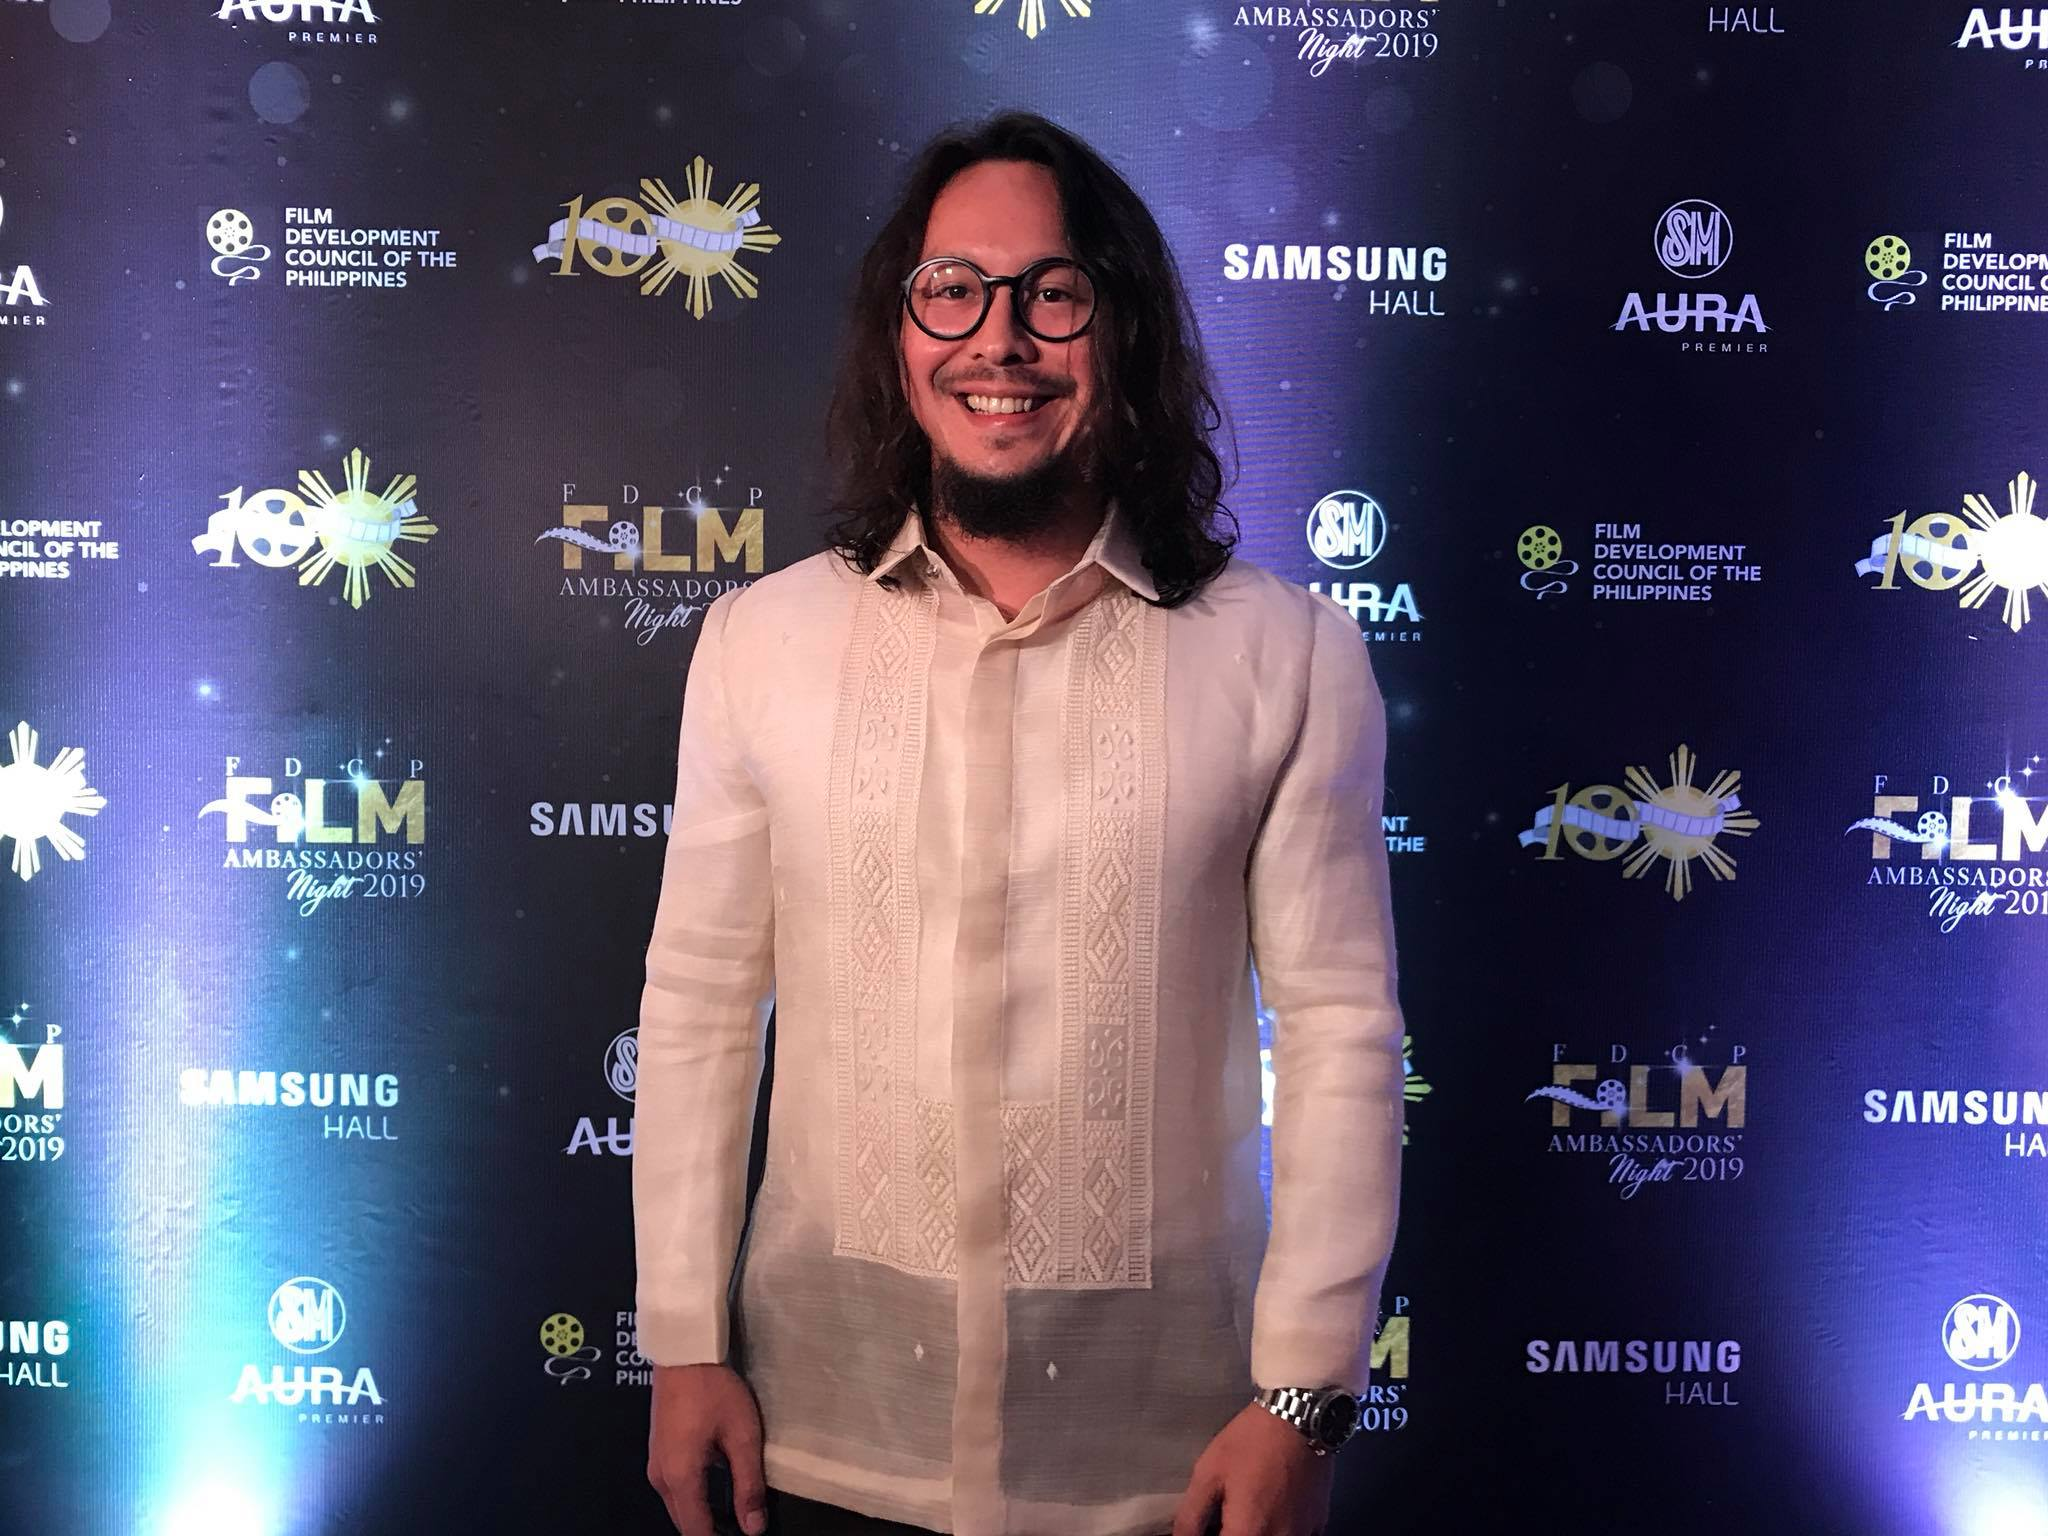 IN THE HOUSE. Baron Geisler